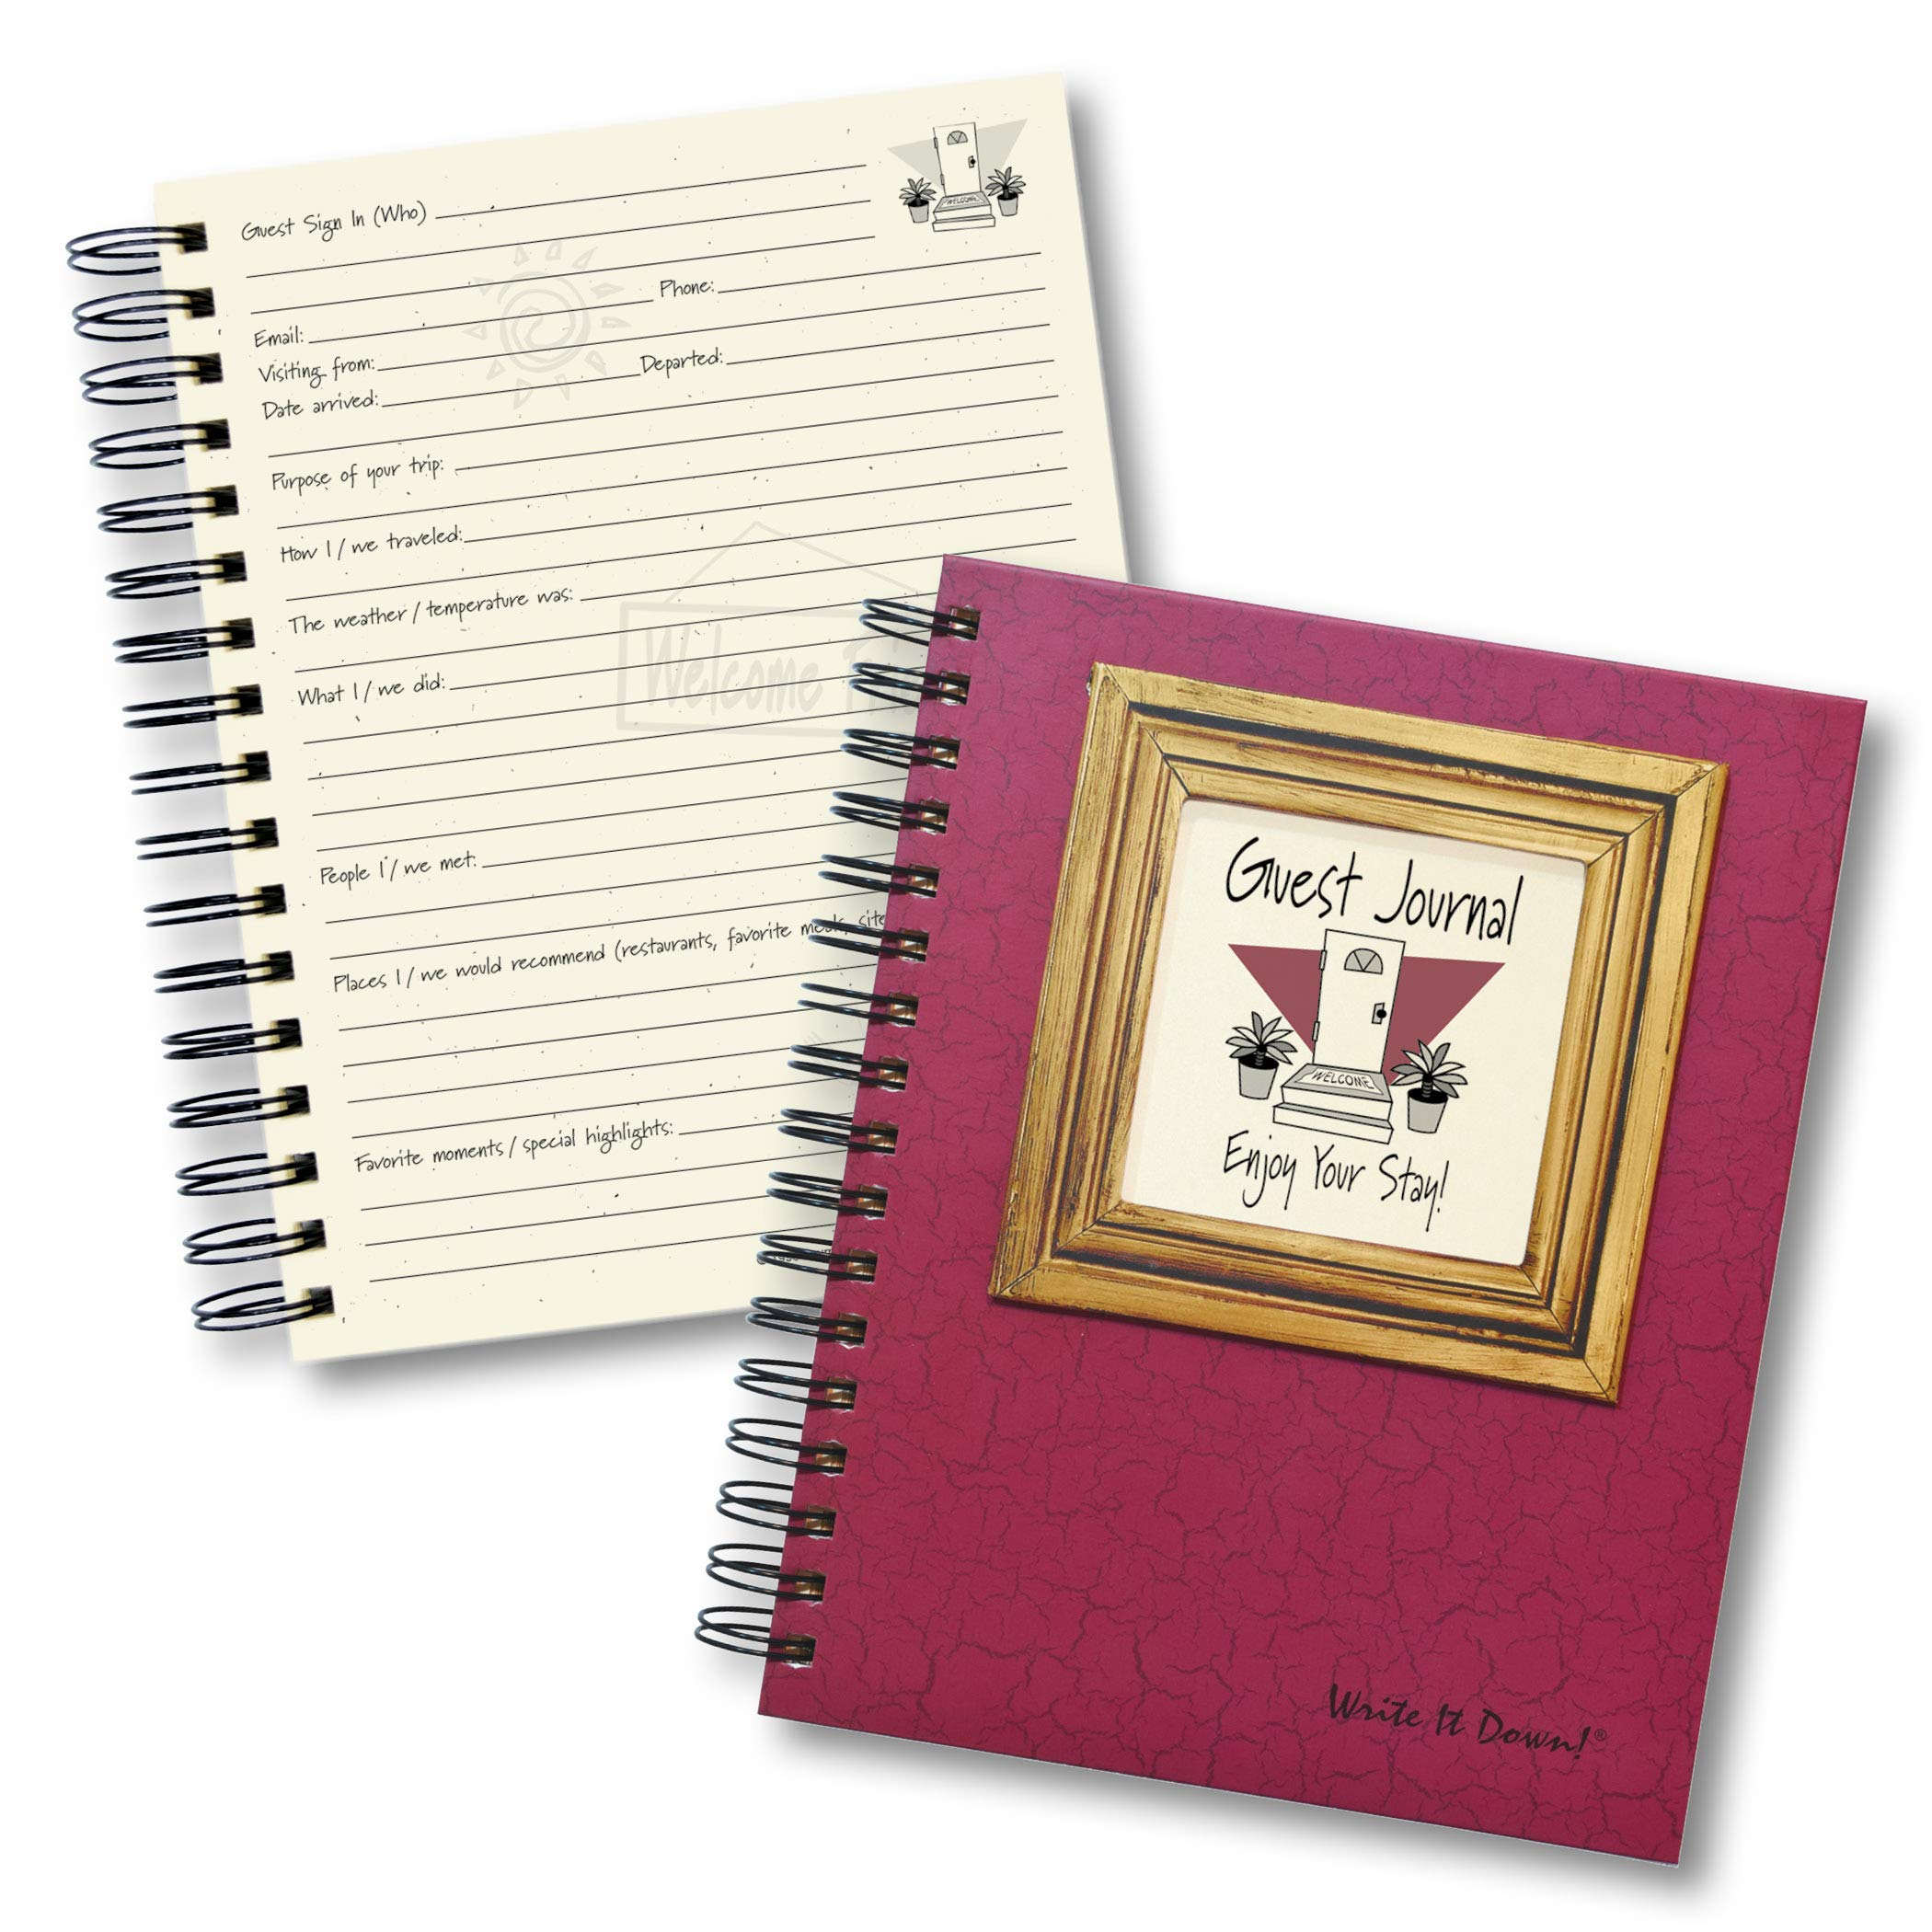 Write It Down Journals Unlimited, Series Guest or Visitors Journal - Cranberry Hard Cover